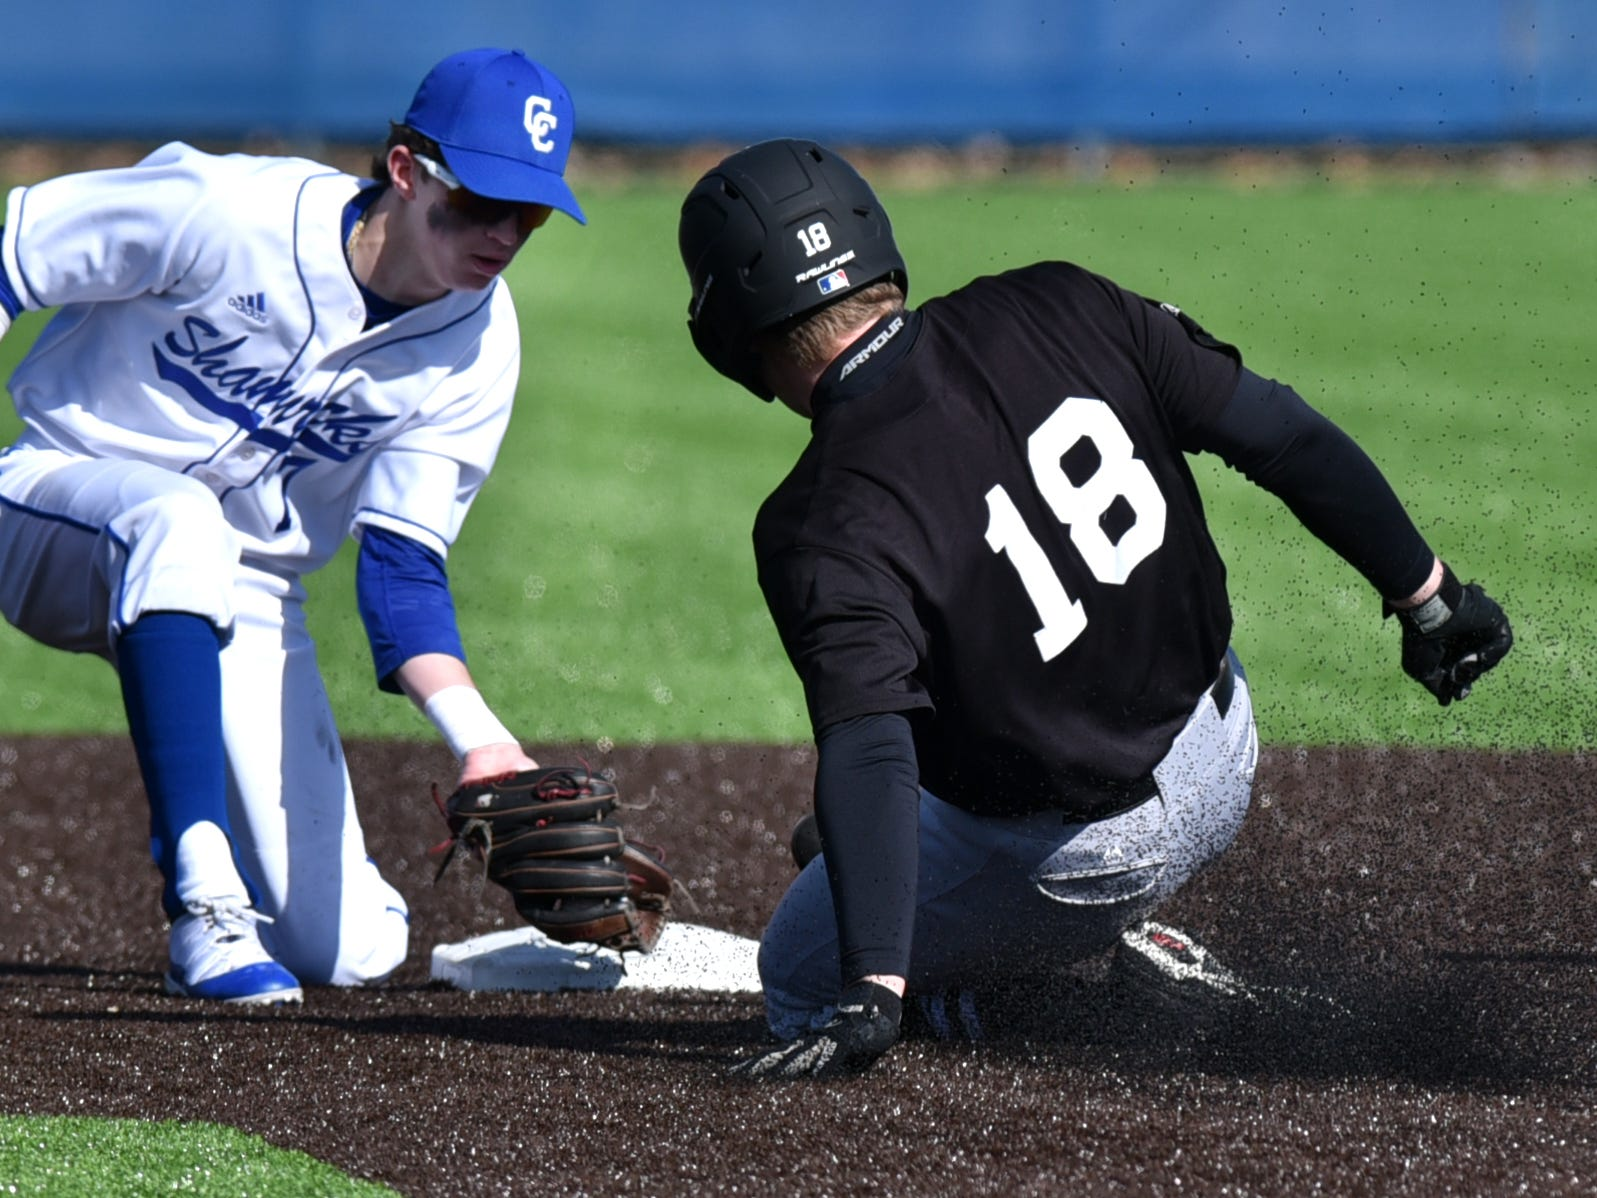 As he slides and throws up a cloud of rubber pellets from the artificial turf - Brother Rice's Sterling Hallman is met at second base by Detroit Cathlolic Central's Regan Paulina - and a tag.